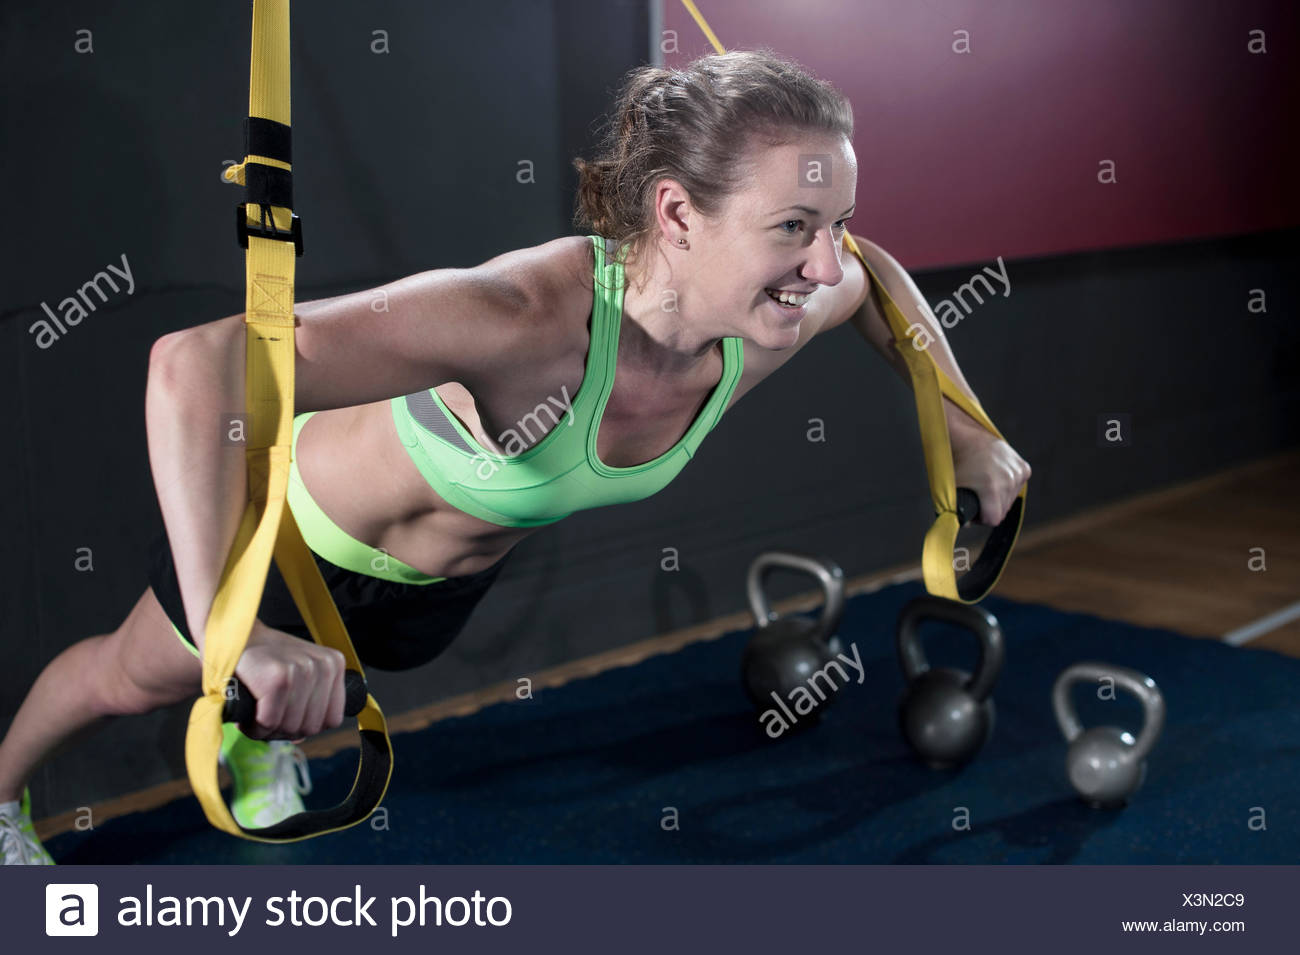 Sportive young woman doing press-ups in the gym with TRX belt, Bavaria, Germany - Stock Image